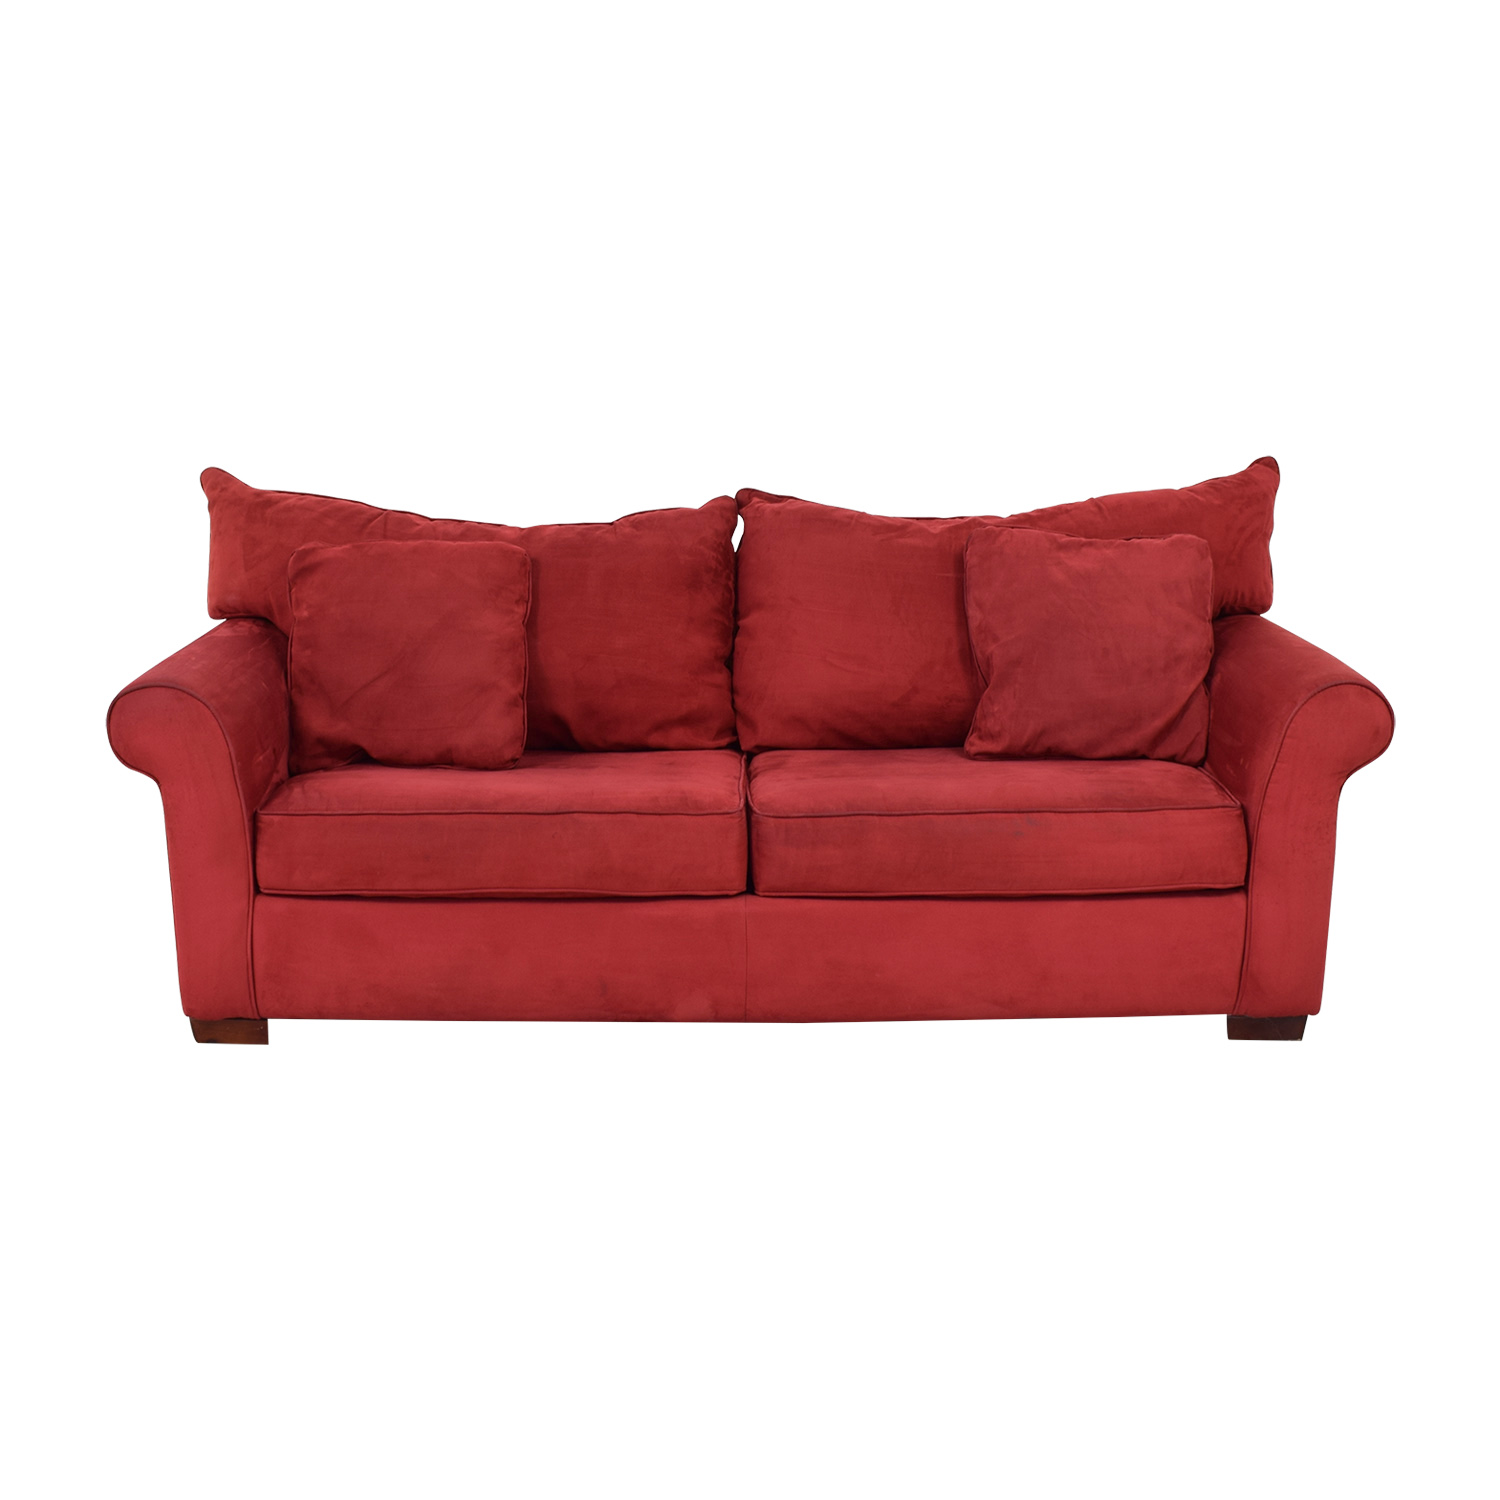 Red Three Seater Sofa Dimensions